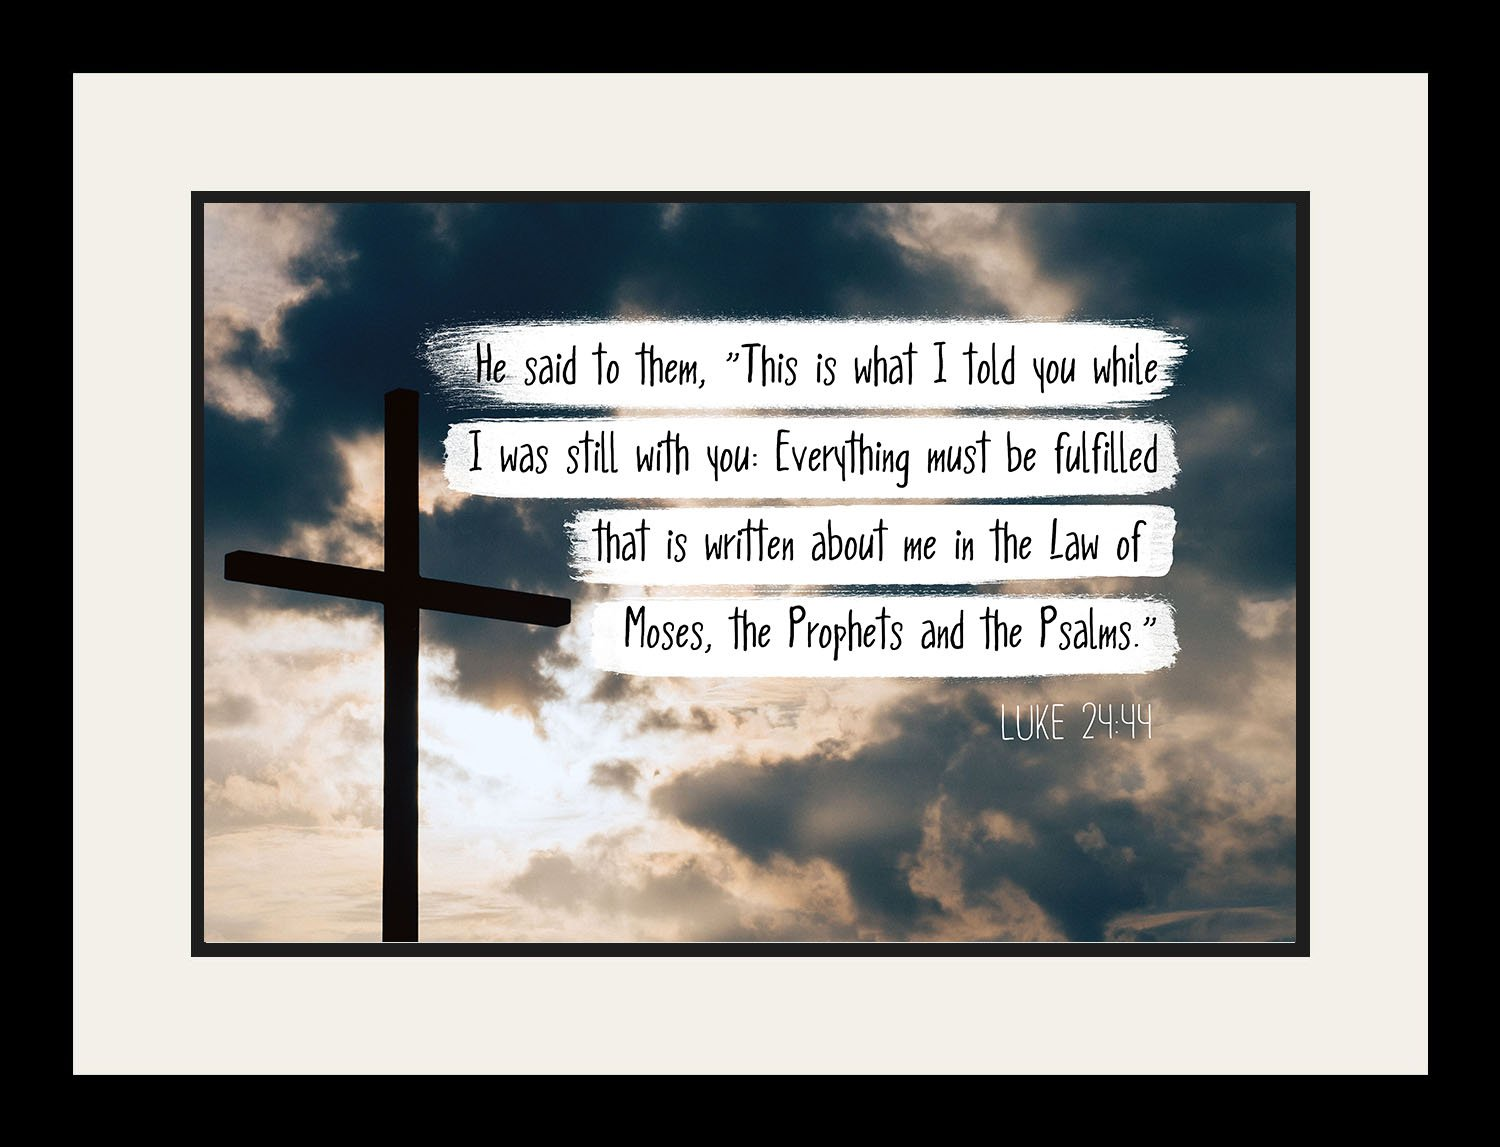 Luke 24:44 Law of Moses, the Prophets - Christian Poster, Print, Picture or Framed Wall Art Decor - Bible Verse Collection - Religious Gift for Holidays Christmas Baptism (19x25 Framed)